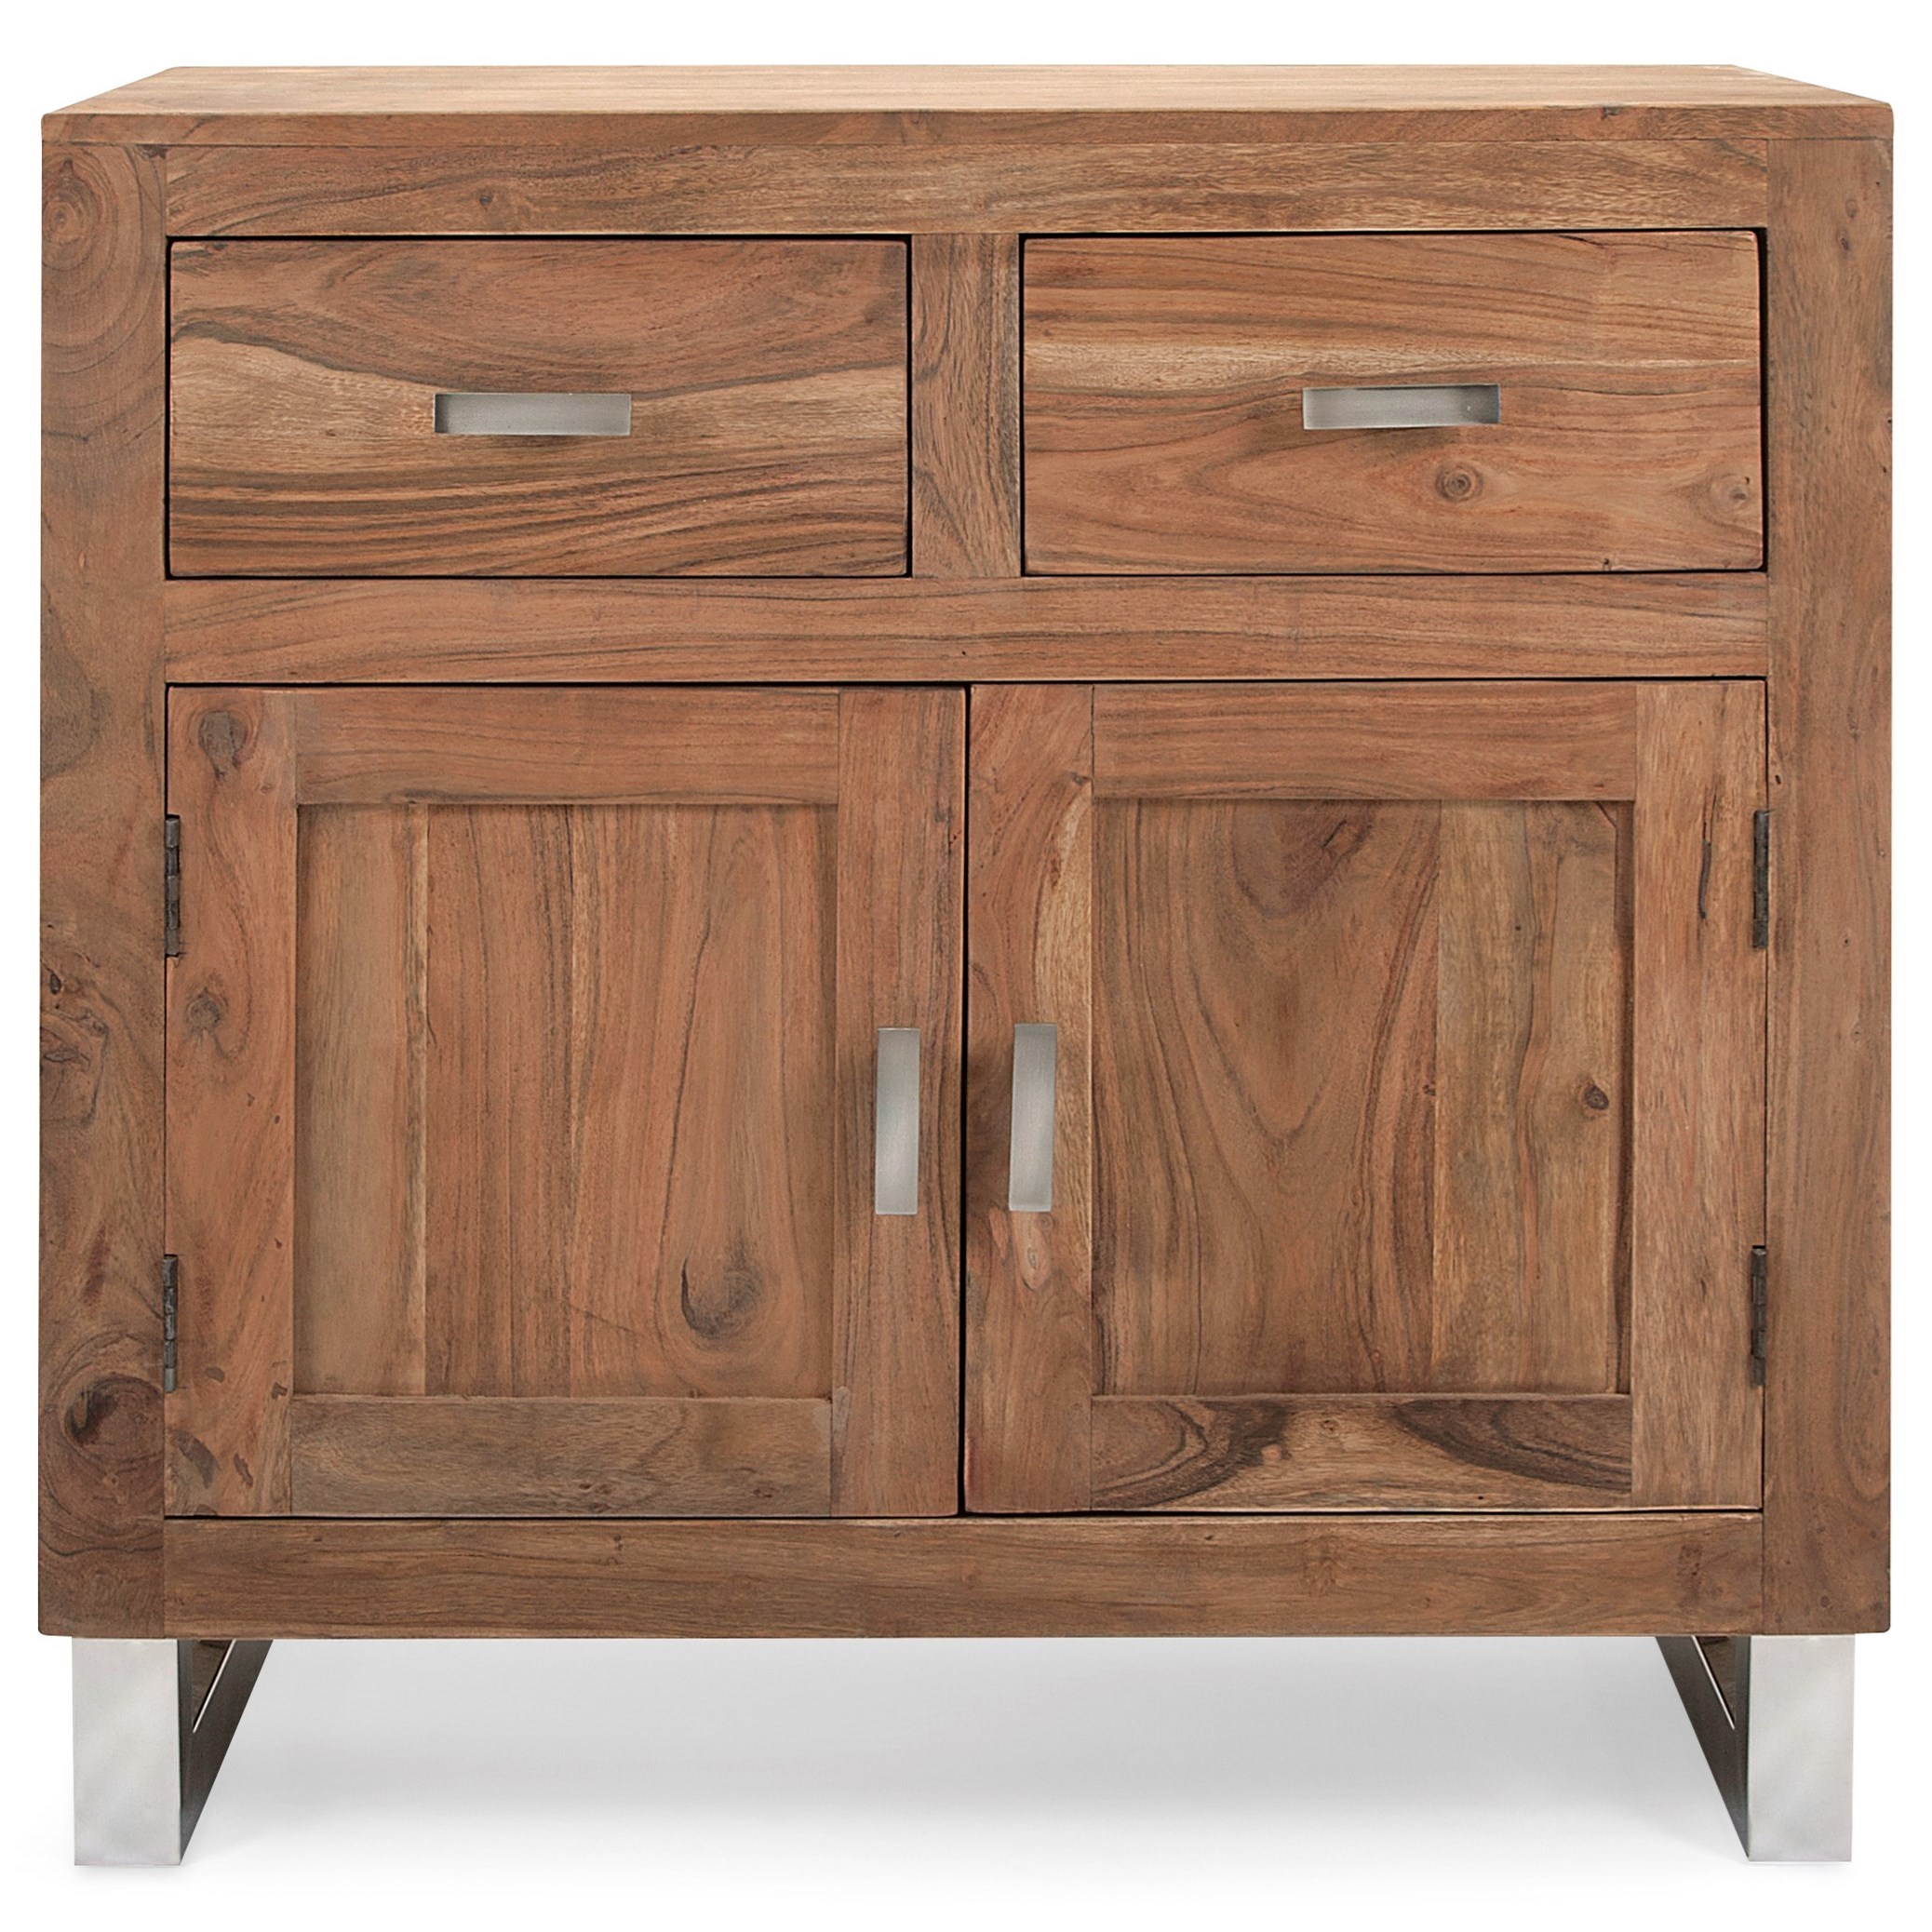 Accent Tables and Cabinets Cori Sideboard by IMAX Worldwide Home at Alison Craig Home Furnishings